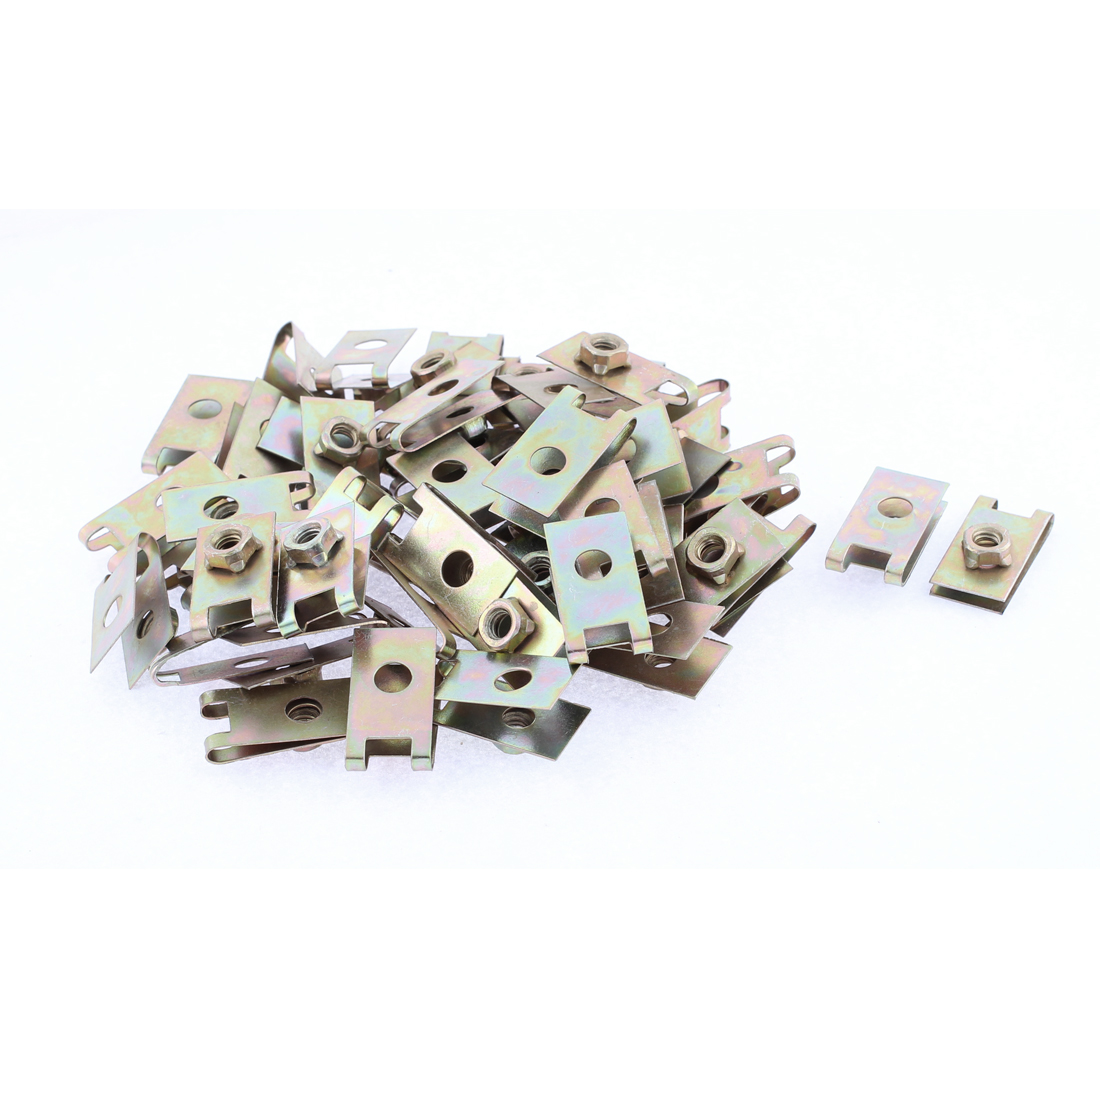 50 Pcs 32mm x 17.2mm Metal Plate U-Type Clips Speed Nuts for Car Panel Fender